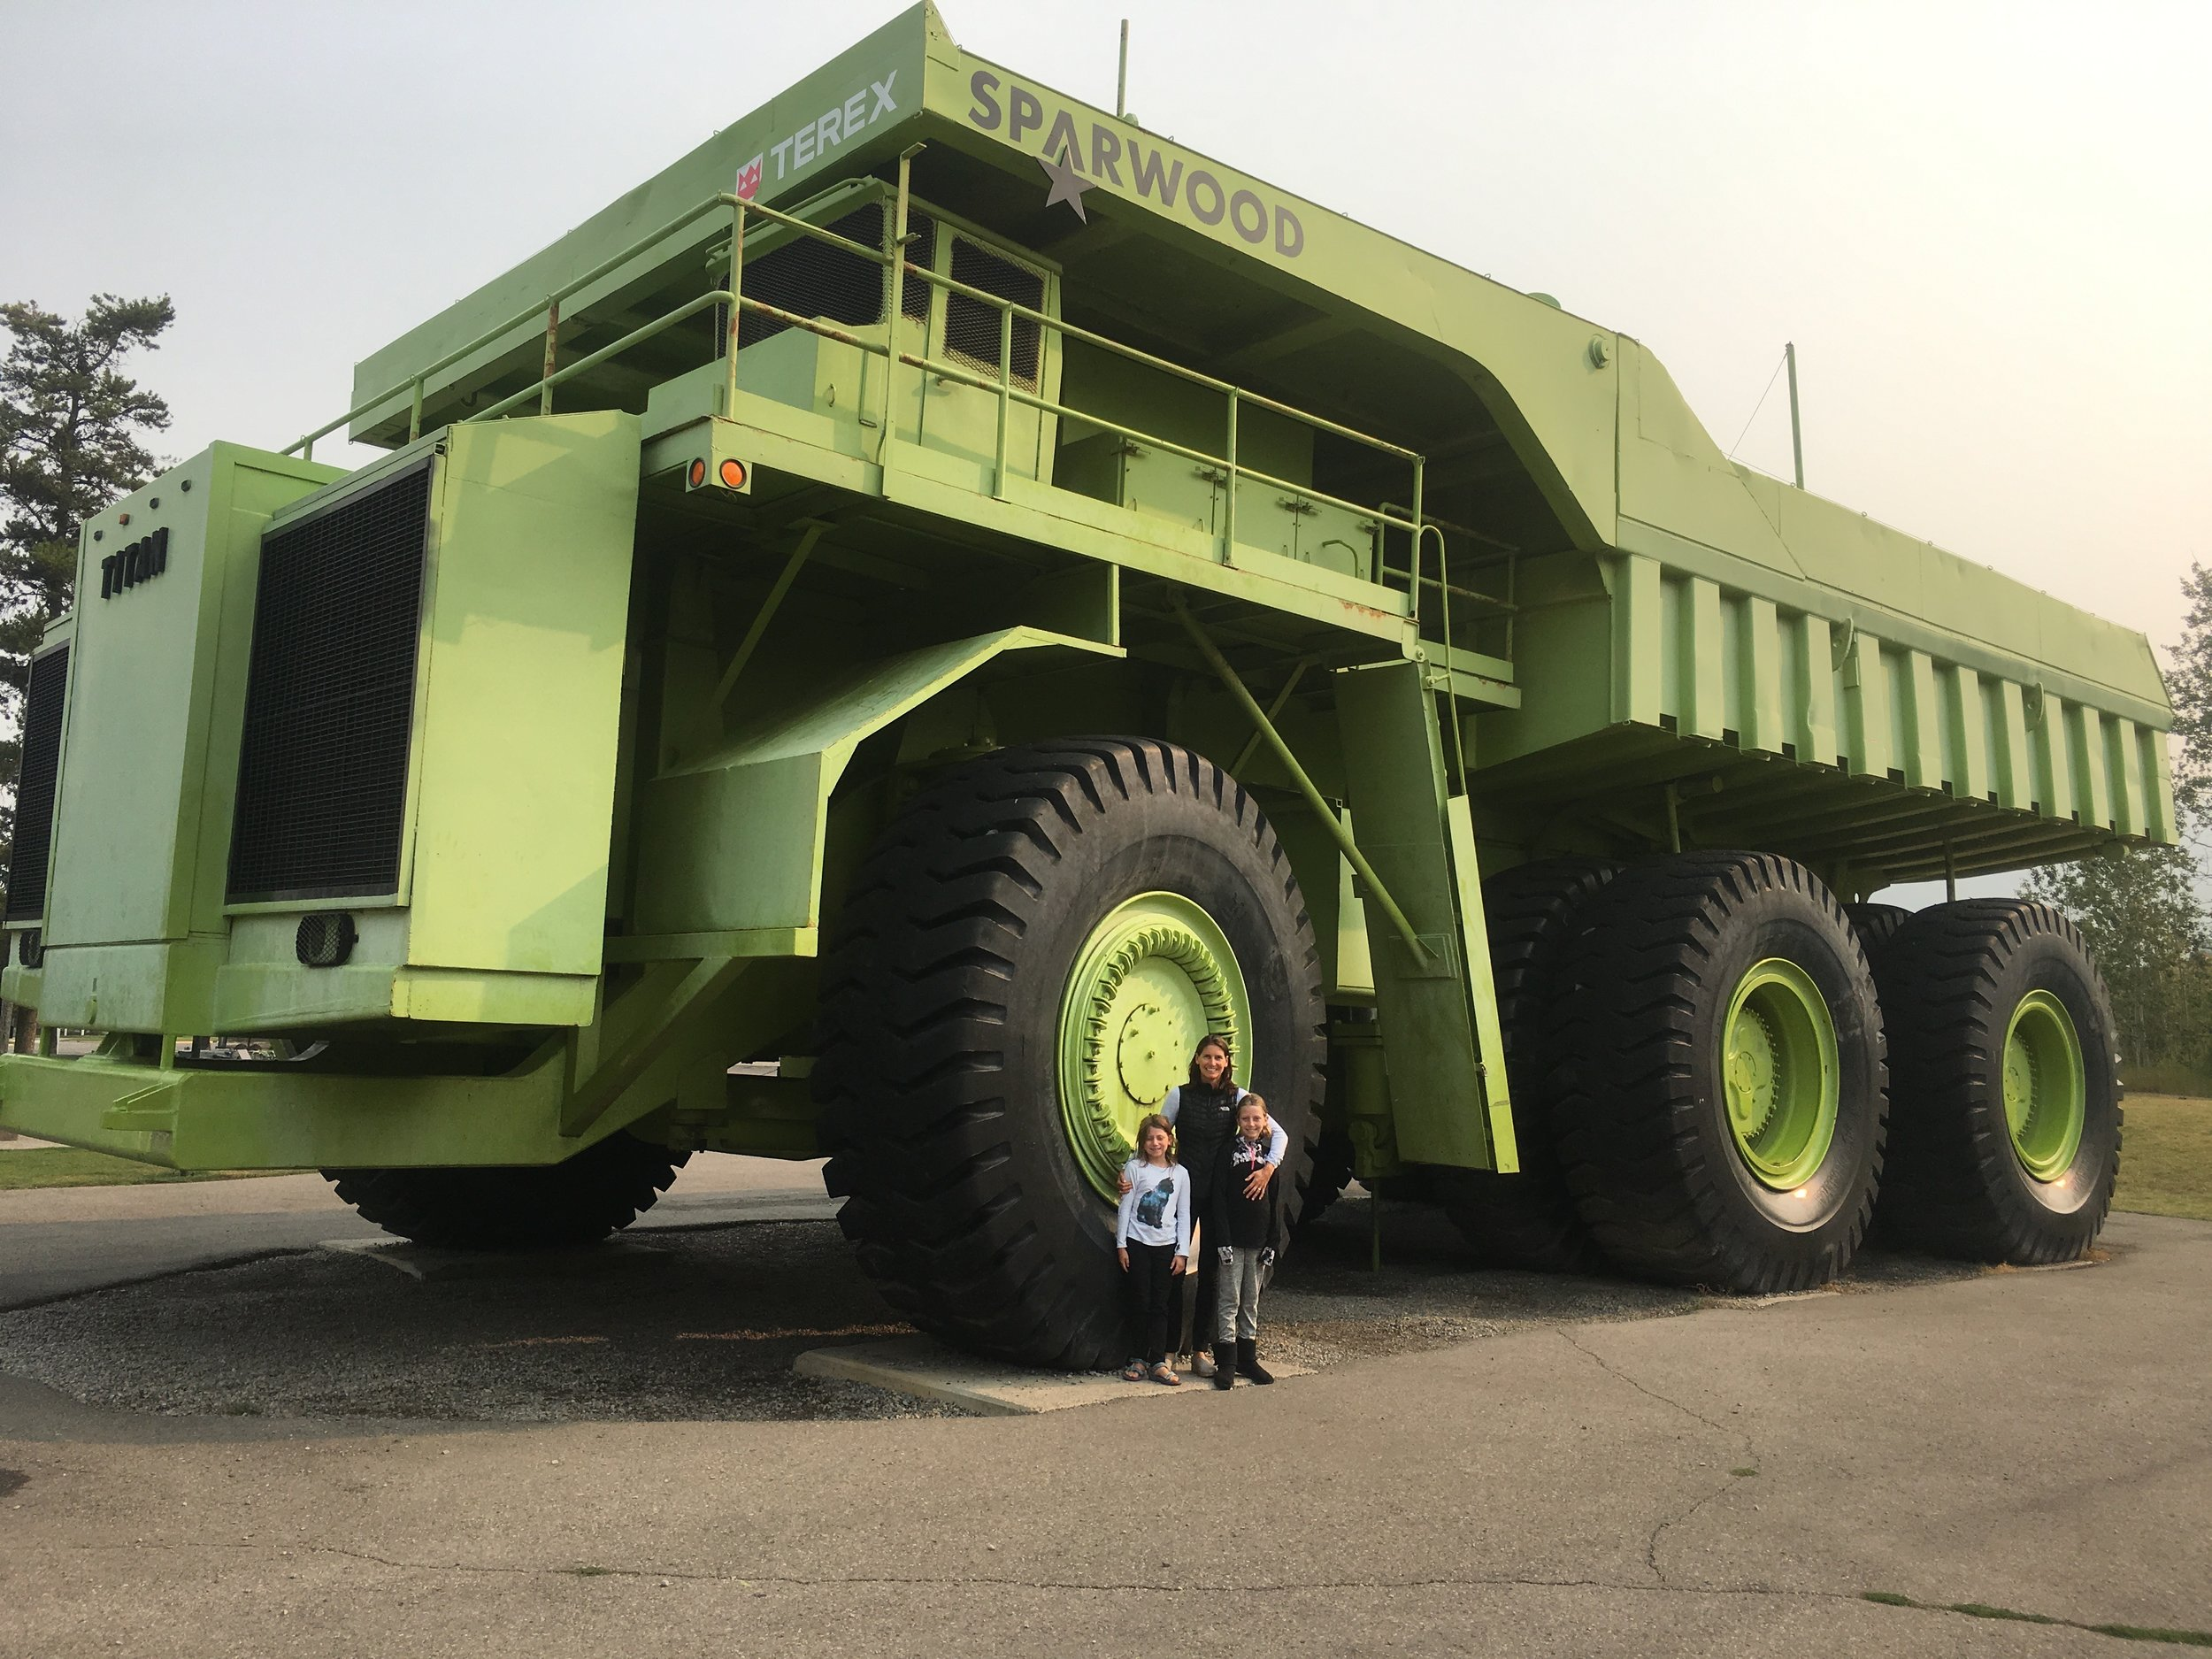 This truck was used for mining coal in the 80's.